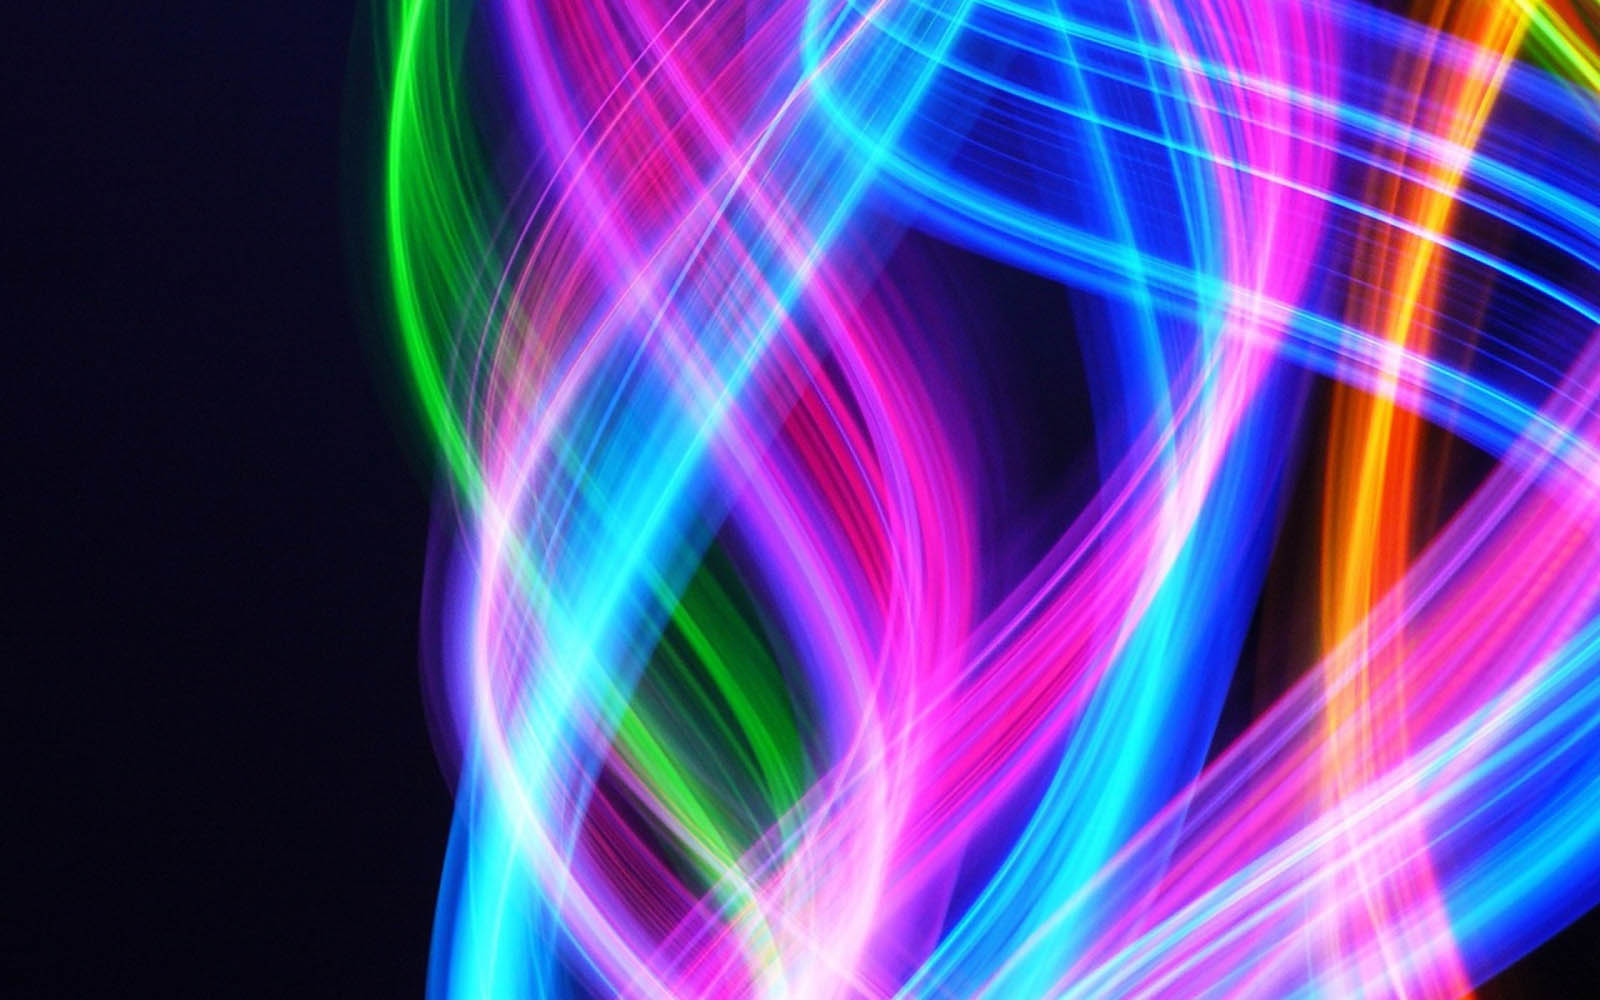 Colorful Lines Wallpapers Images Photos Pictures and Backgrounds 1600x1000